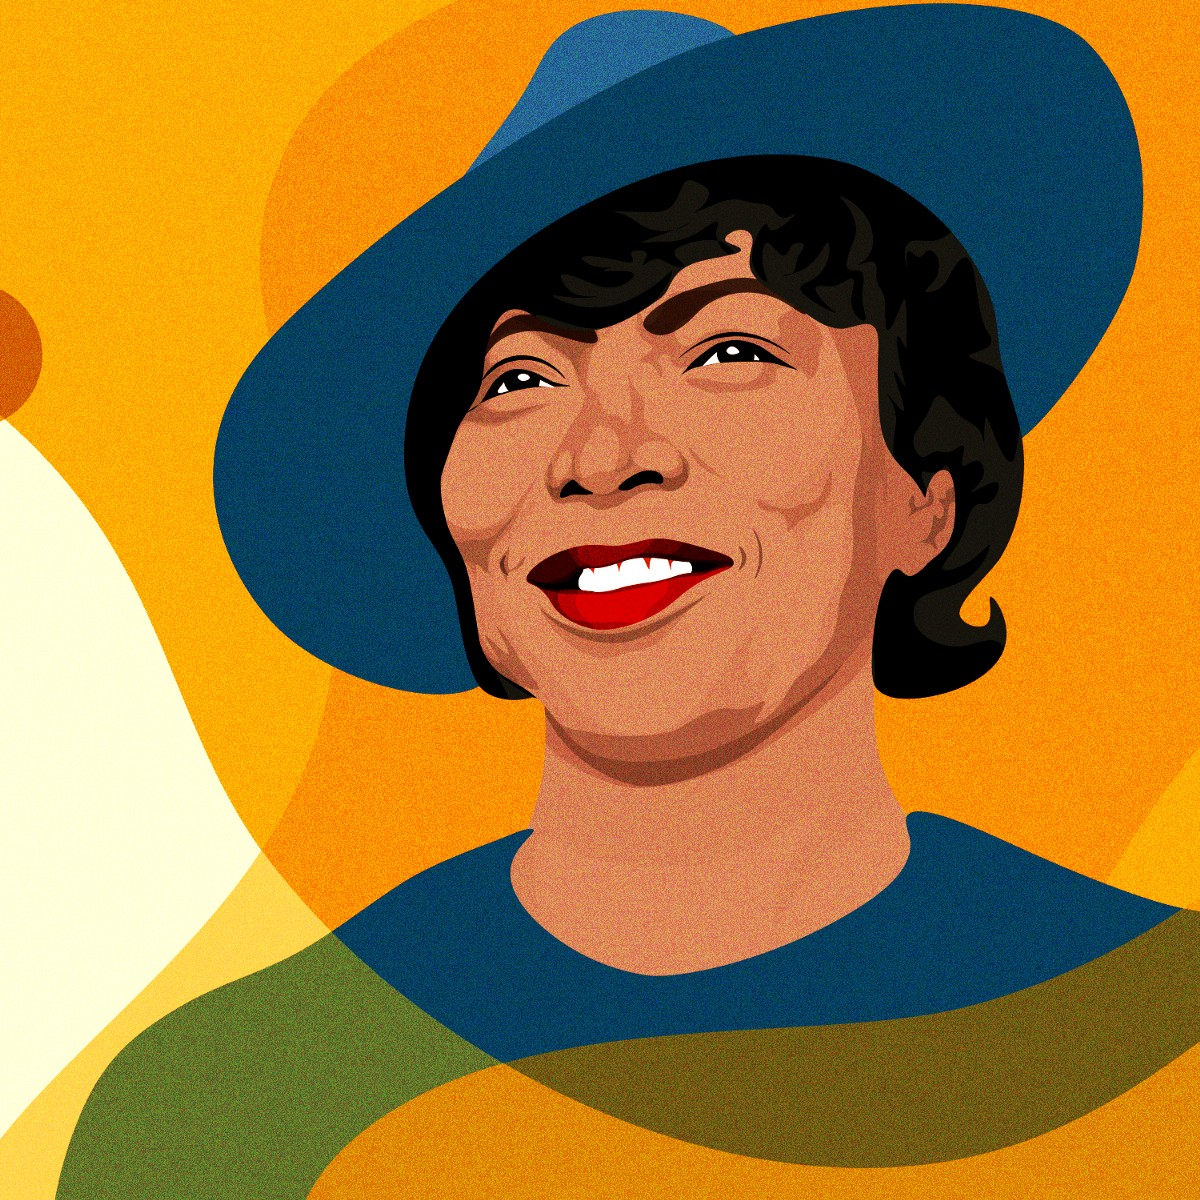 The Key to Zora Neale Hurston's Popularity Is How She Protected Black Stories